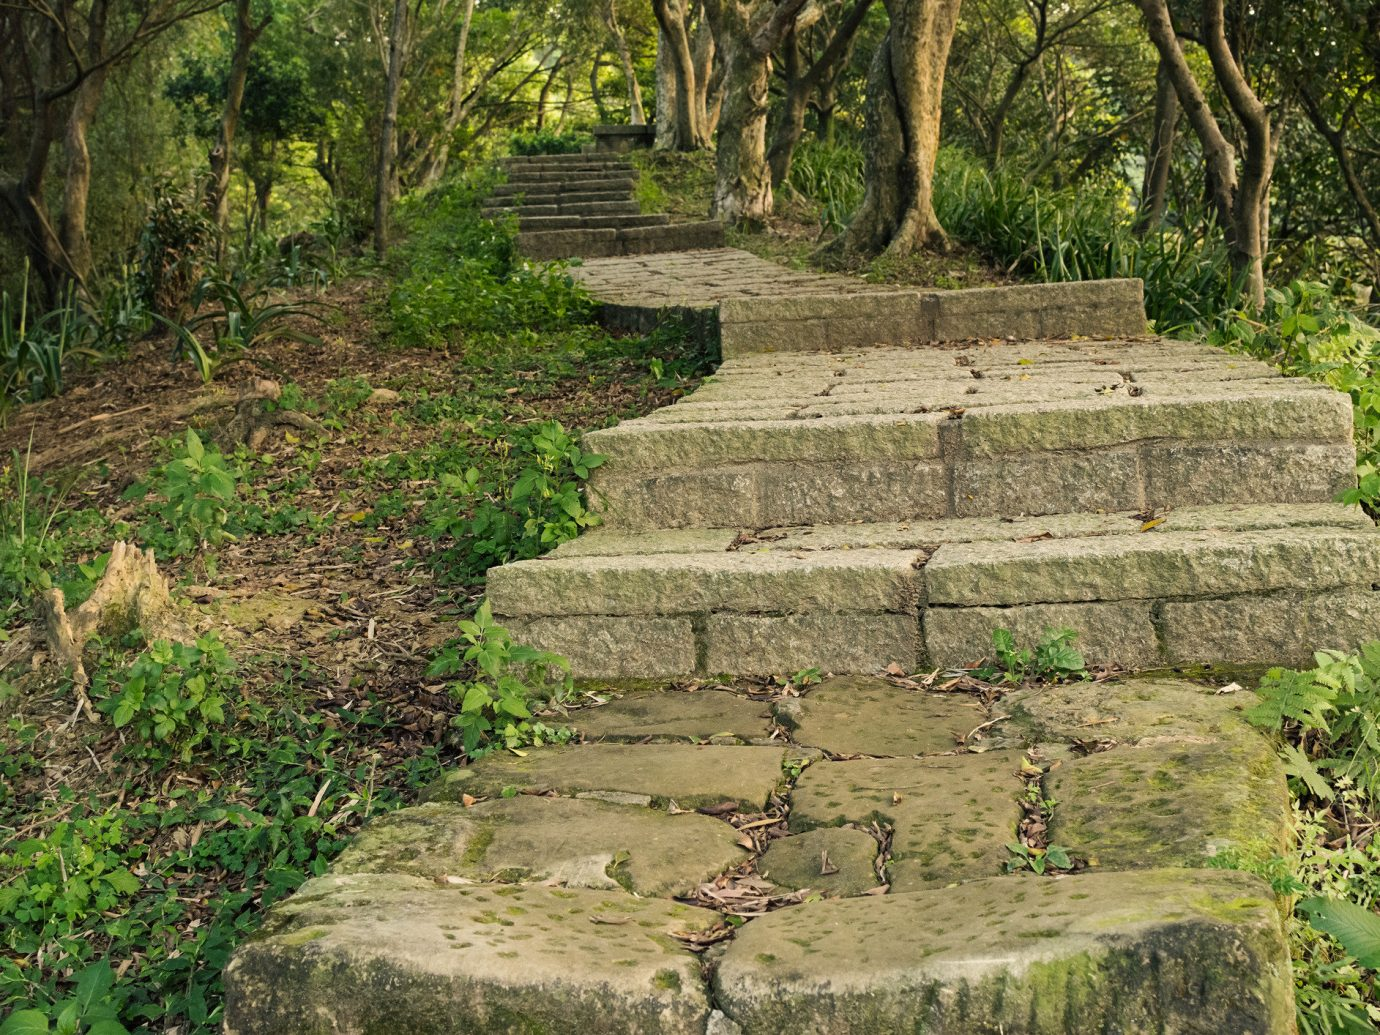 Trip Ideas tree grass outdoor archaeological site wall botany Ruins rock park woodland Forest Garden green ancient history walkway stone wall Jungle plant surrounded stone lush